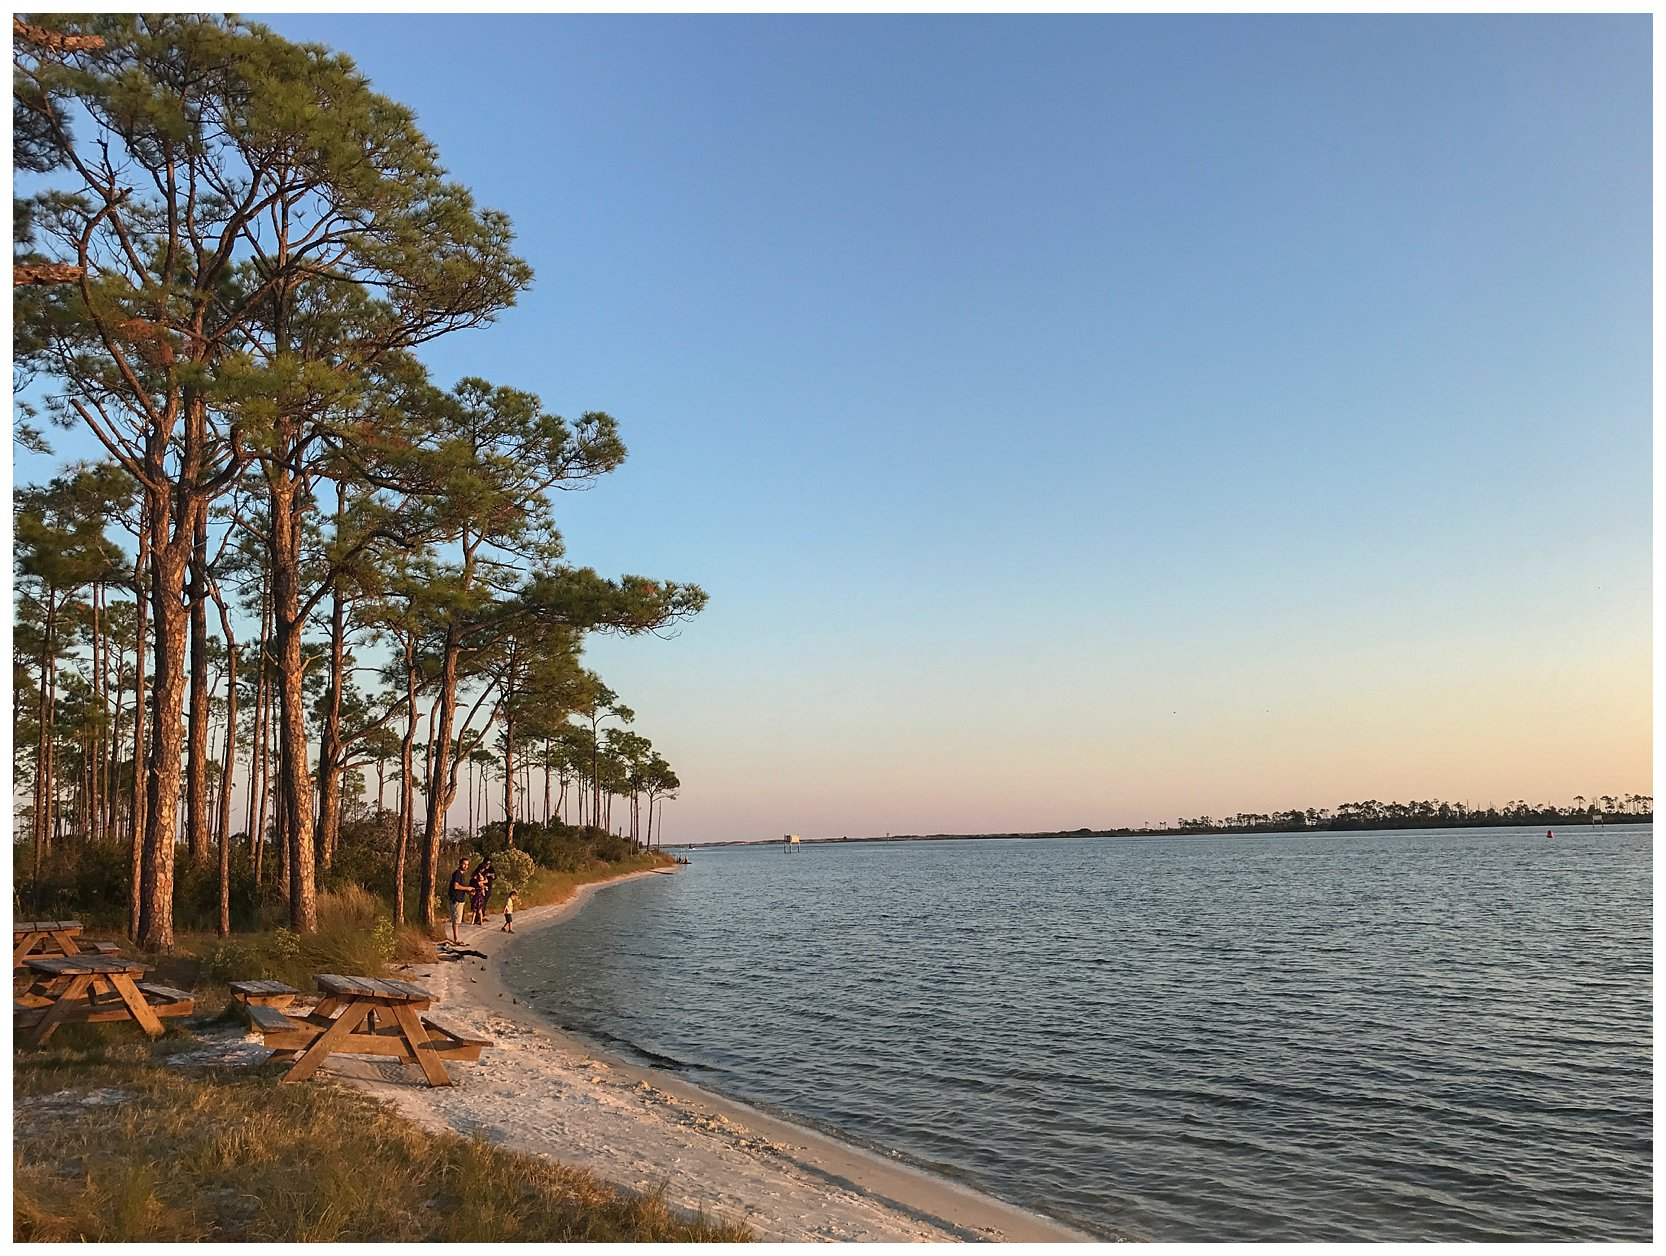 The beaches at Big Lagoon State park